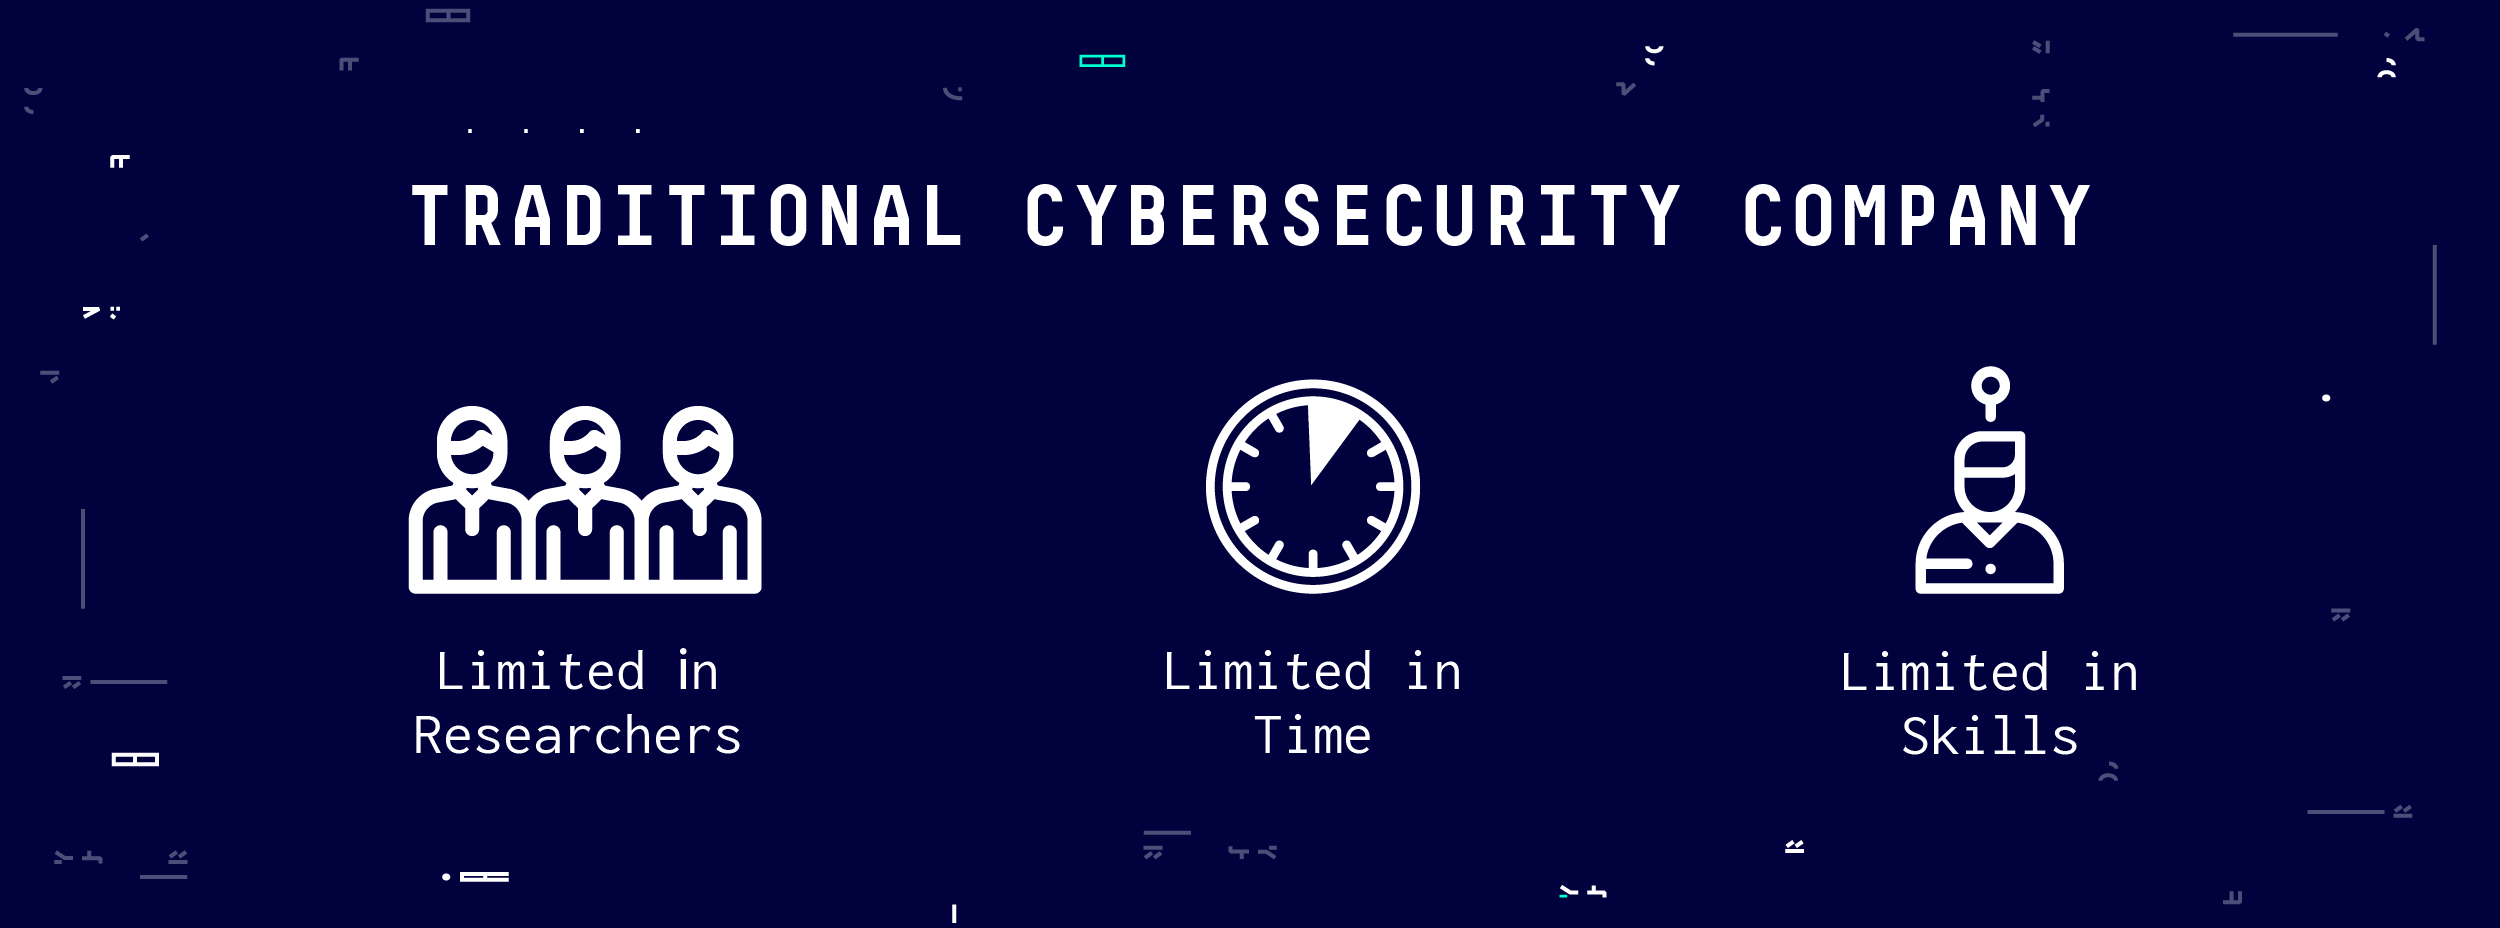 Traditional Cybersecurity Company